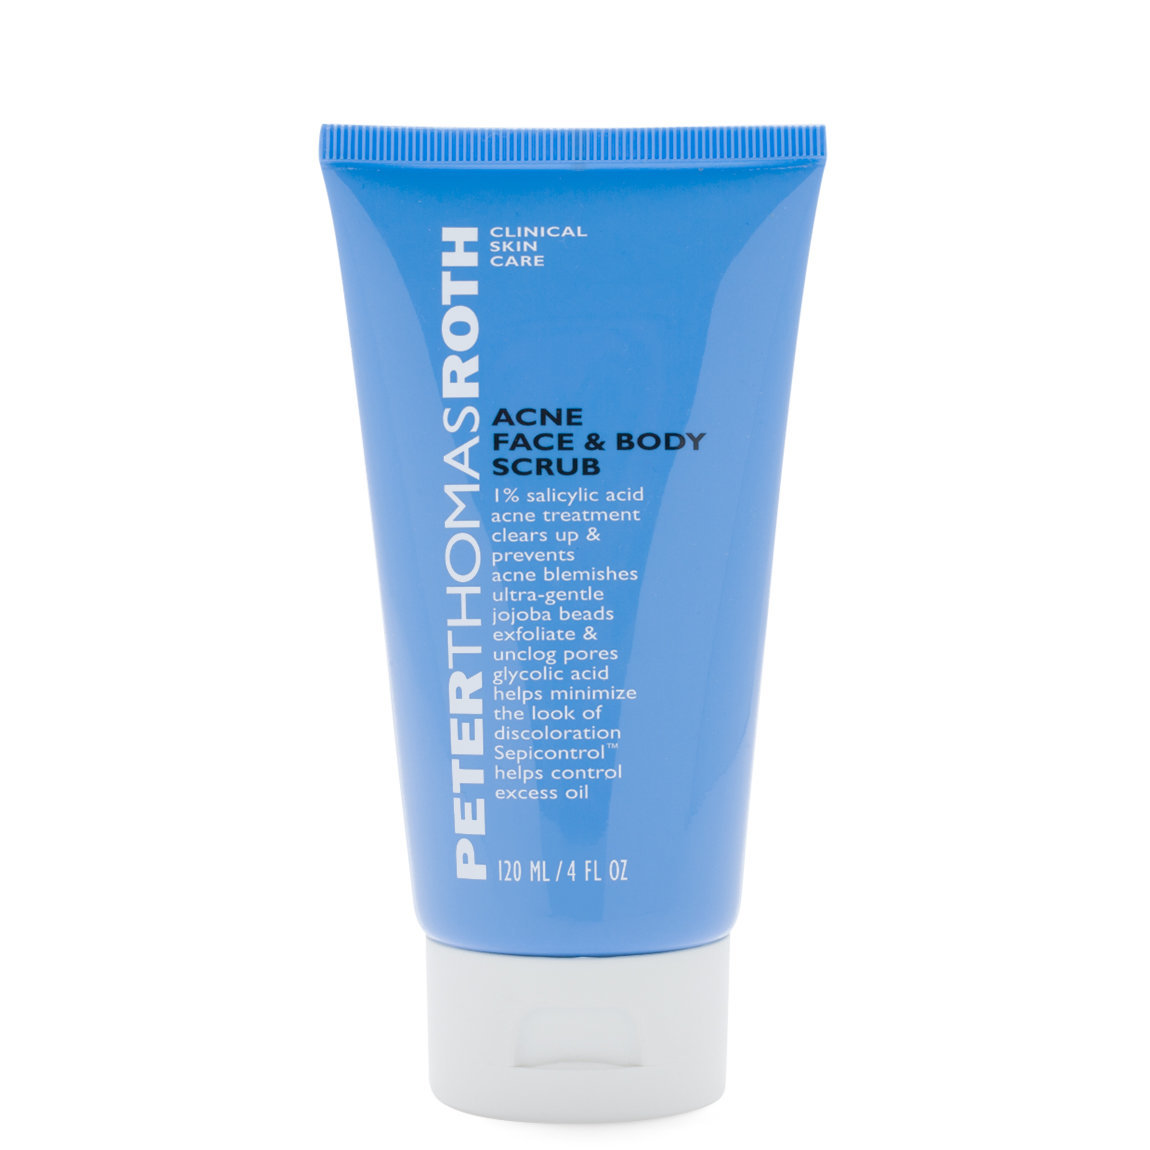 Peter Thomas Roth Acne Face & Body Scrub product swatch.